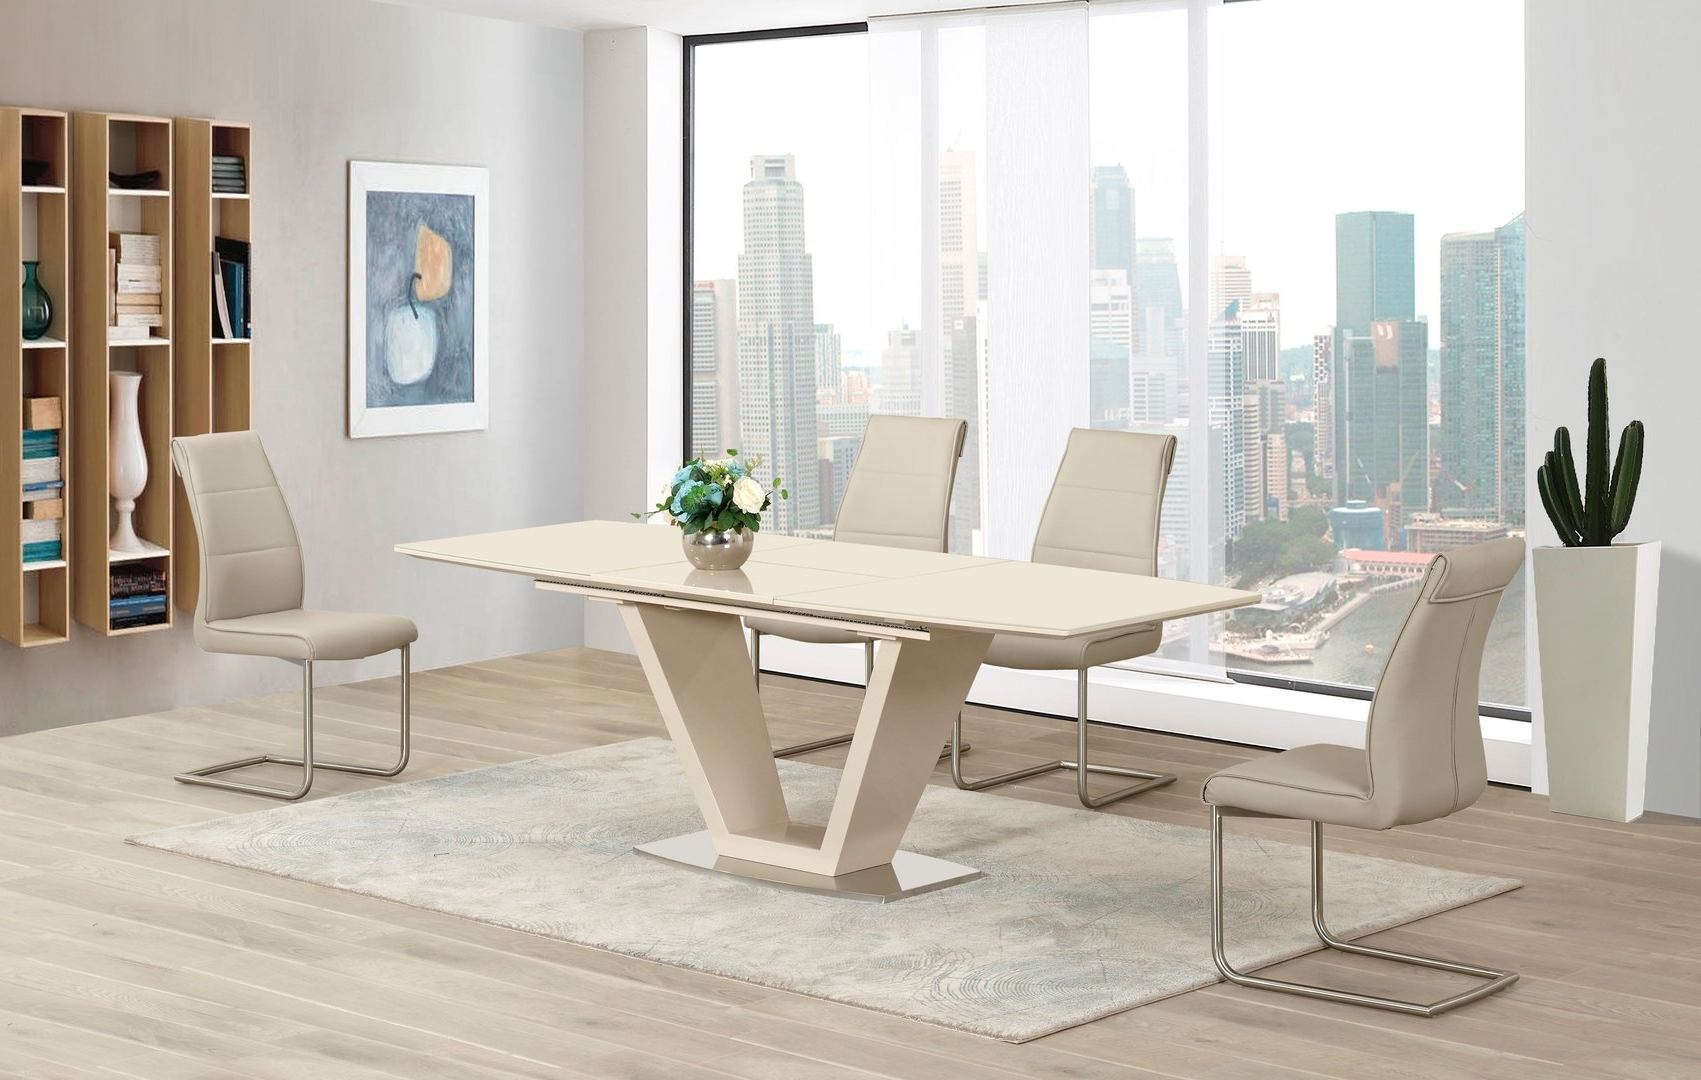 Cream Extending Glass High Gloss Dining Table And 6 Taupe Chairs Throughout Most Recently Released High Gloss Cream Dining Tables (Gallery 4 of 25)